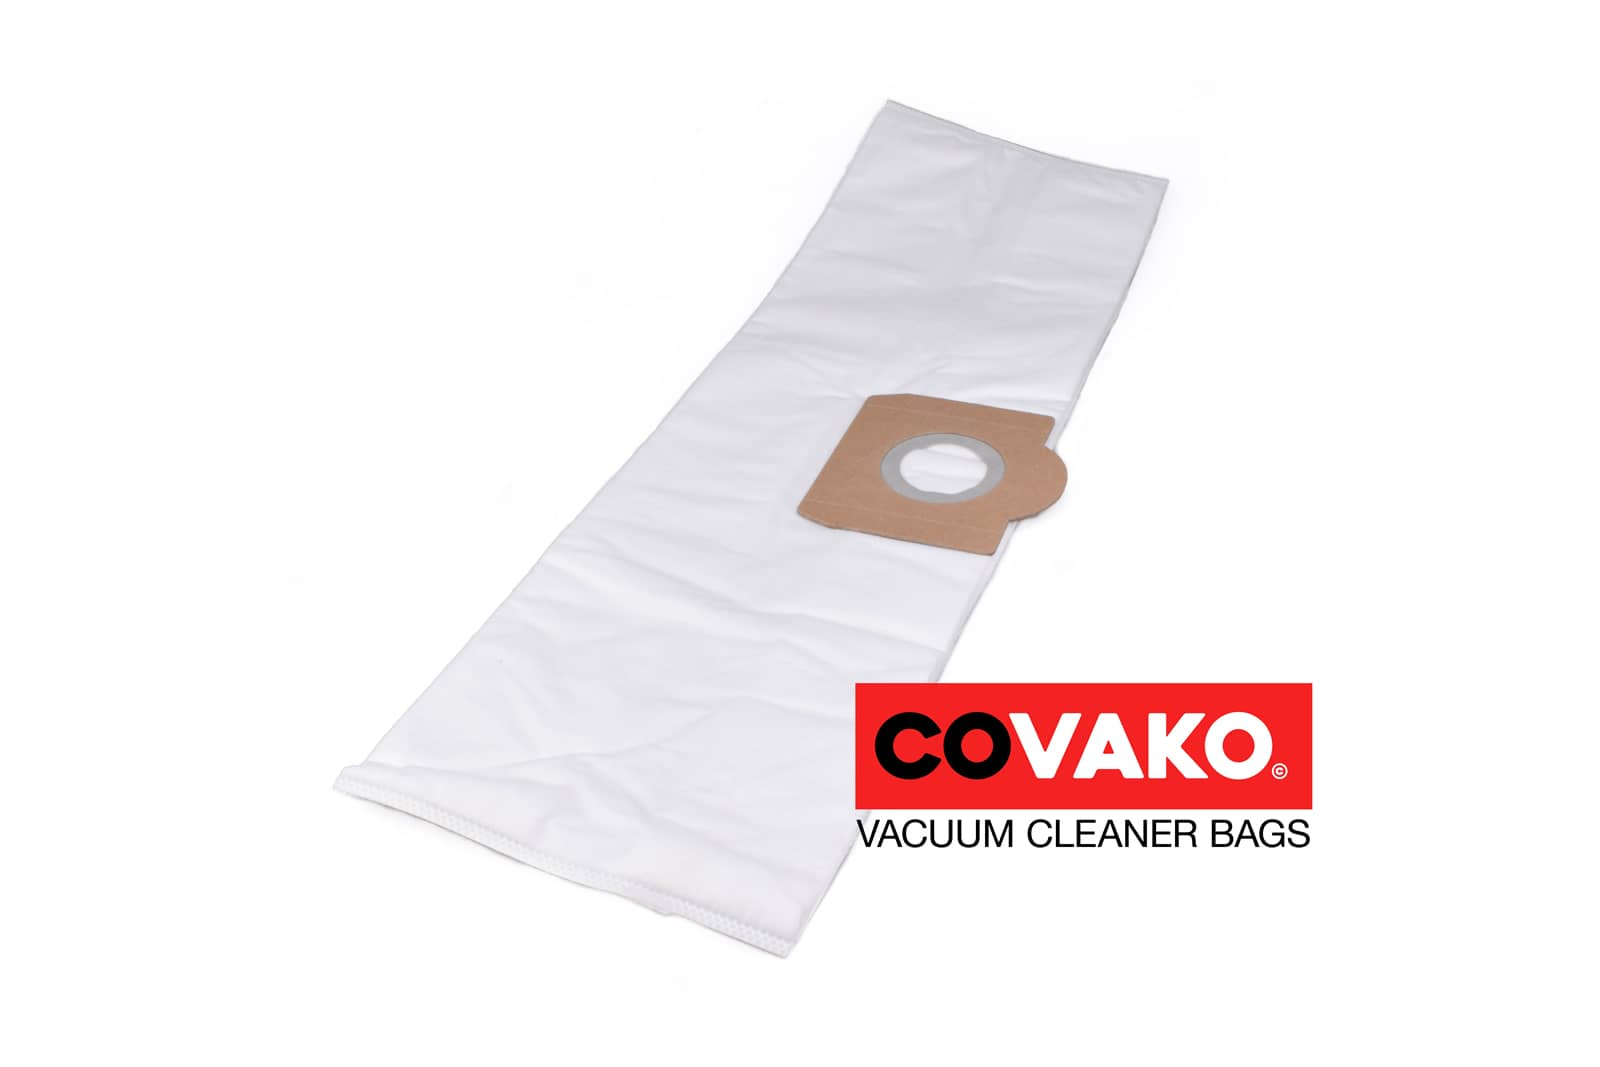 Einhell BT-VC 1250 S / Synthesis - Einhell vacuum cleaner bags